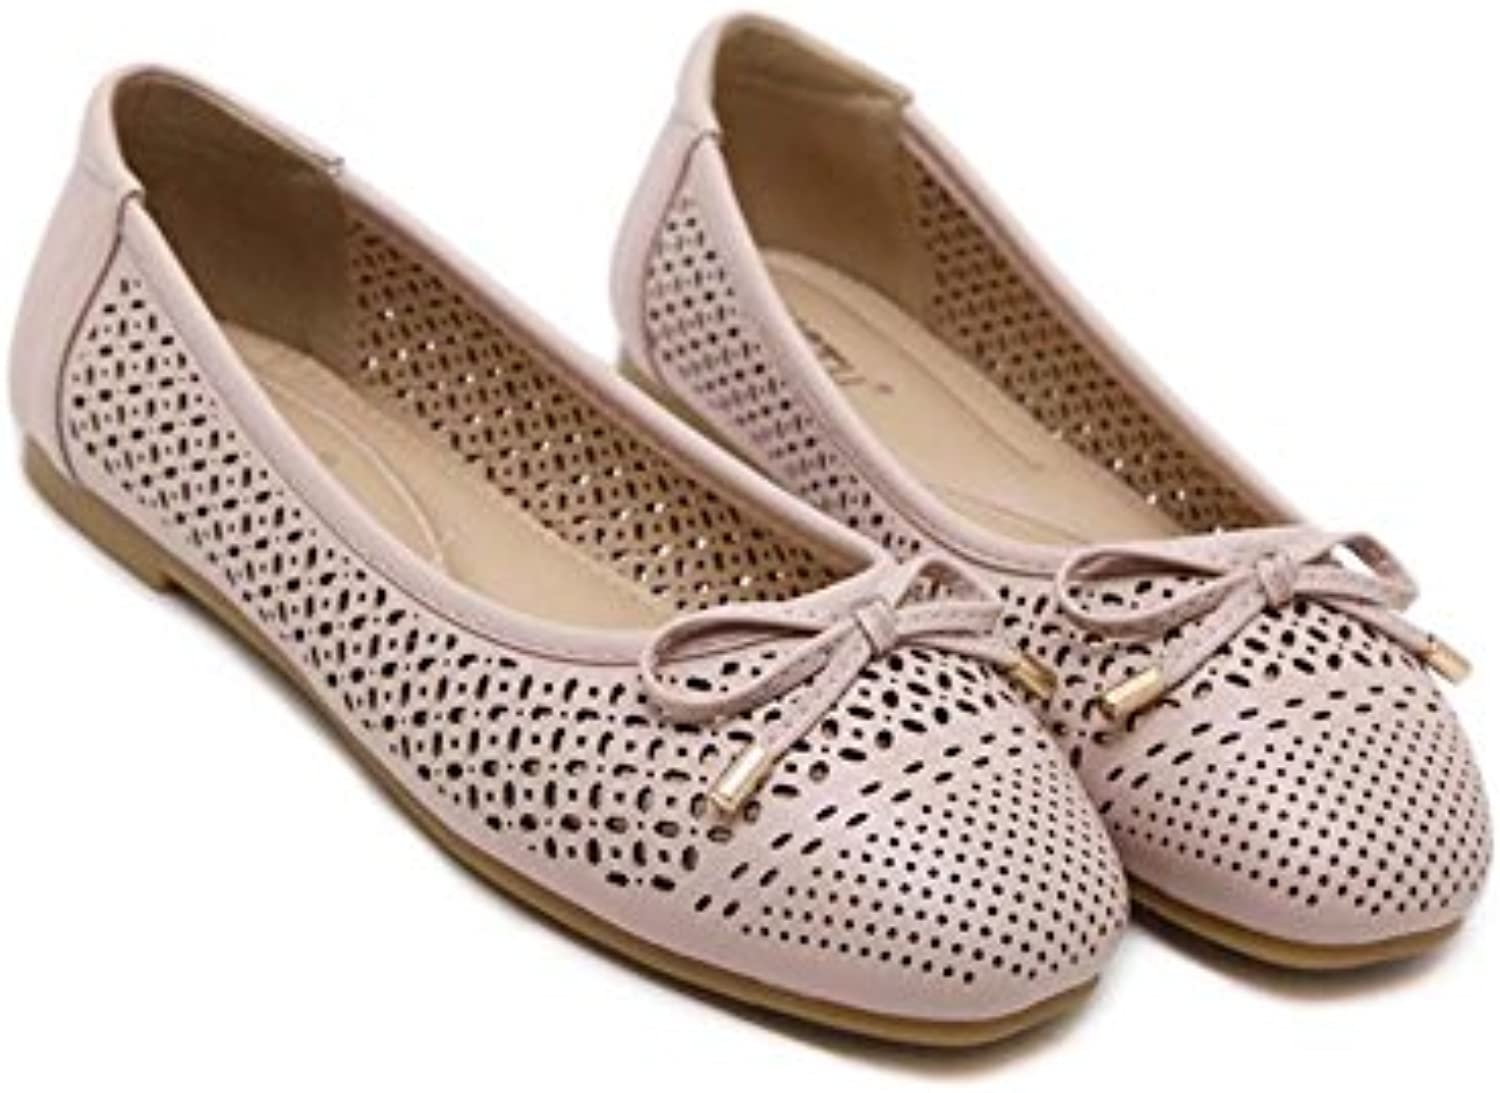 Bomba Ballerina Flats Loafer Jelly Mujeres Simple Punto Ronda Pure Color Hollow Bowknot Soft Bottom Zapatos Casual...